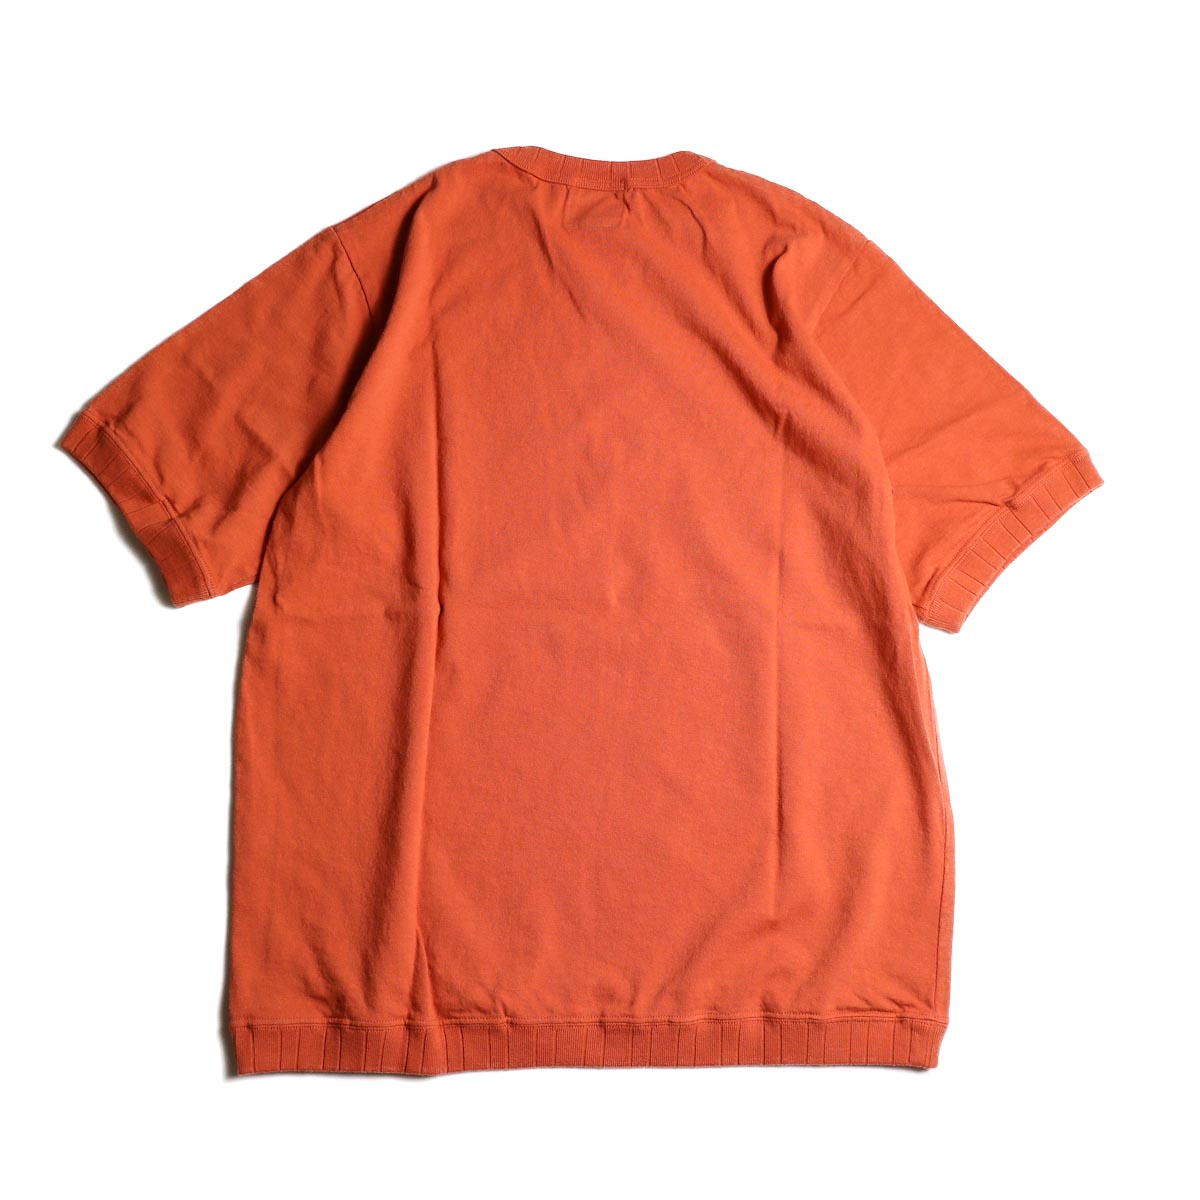 Jackman / Rib T-Shirt (Sunset Orange)  背面